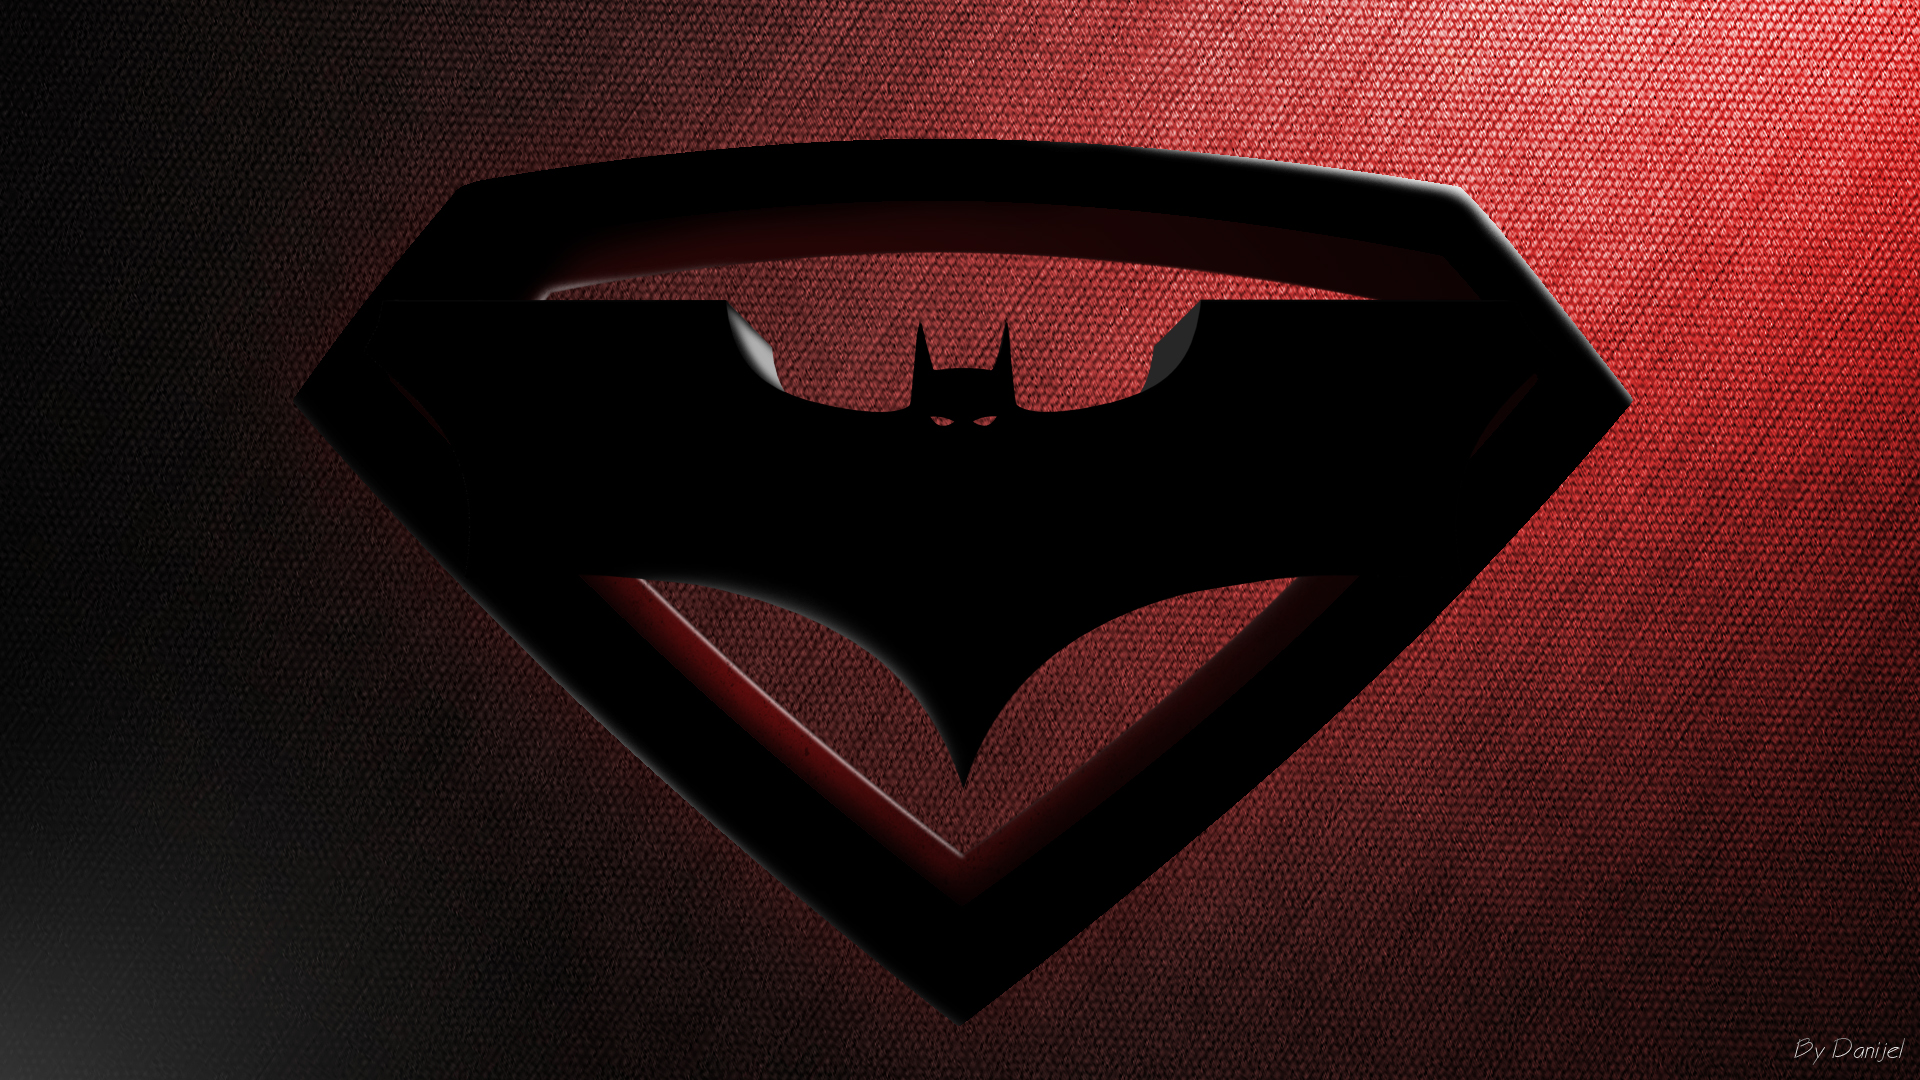 super-bat full hd wallpaper and background image | 1920x1080 | id:425700